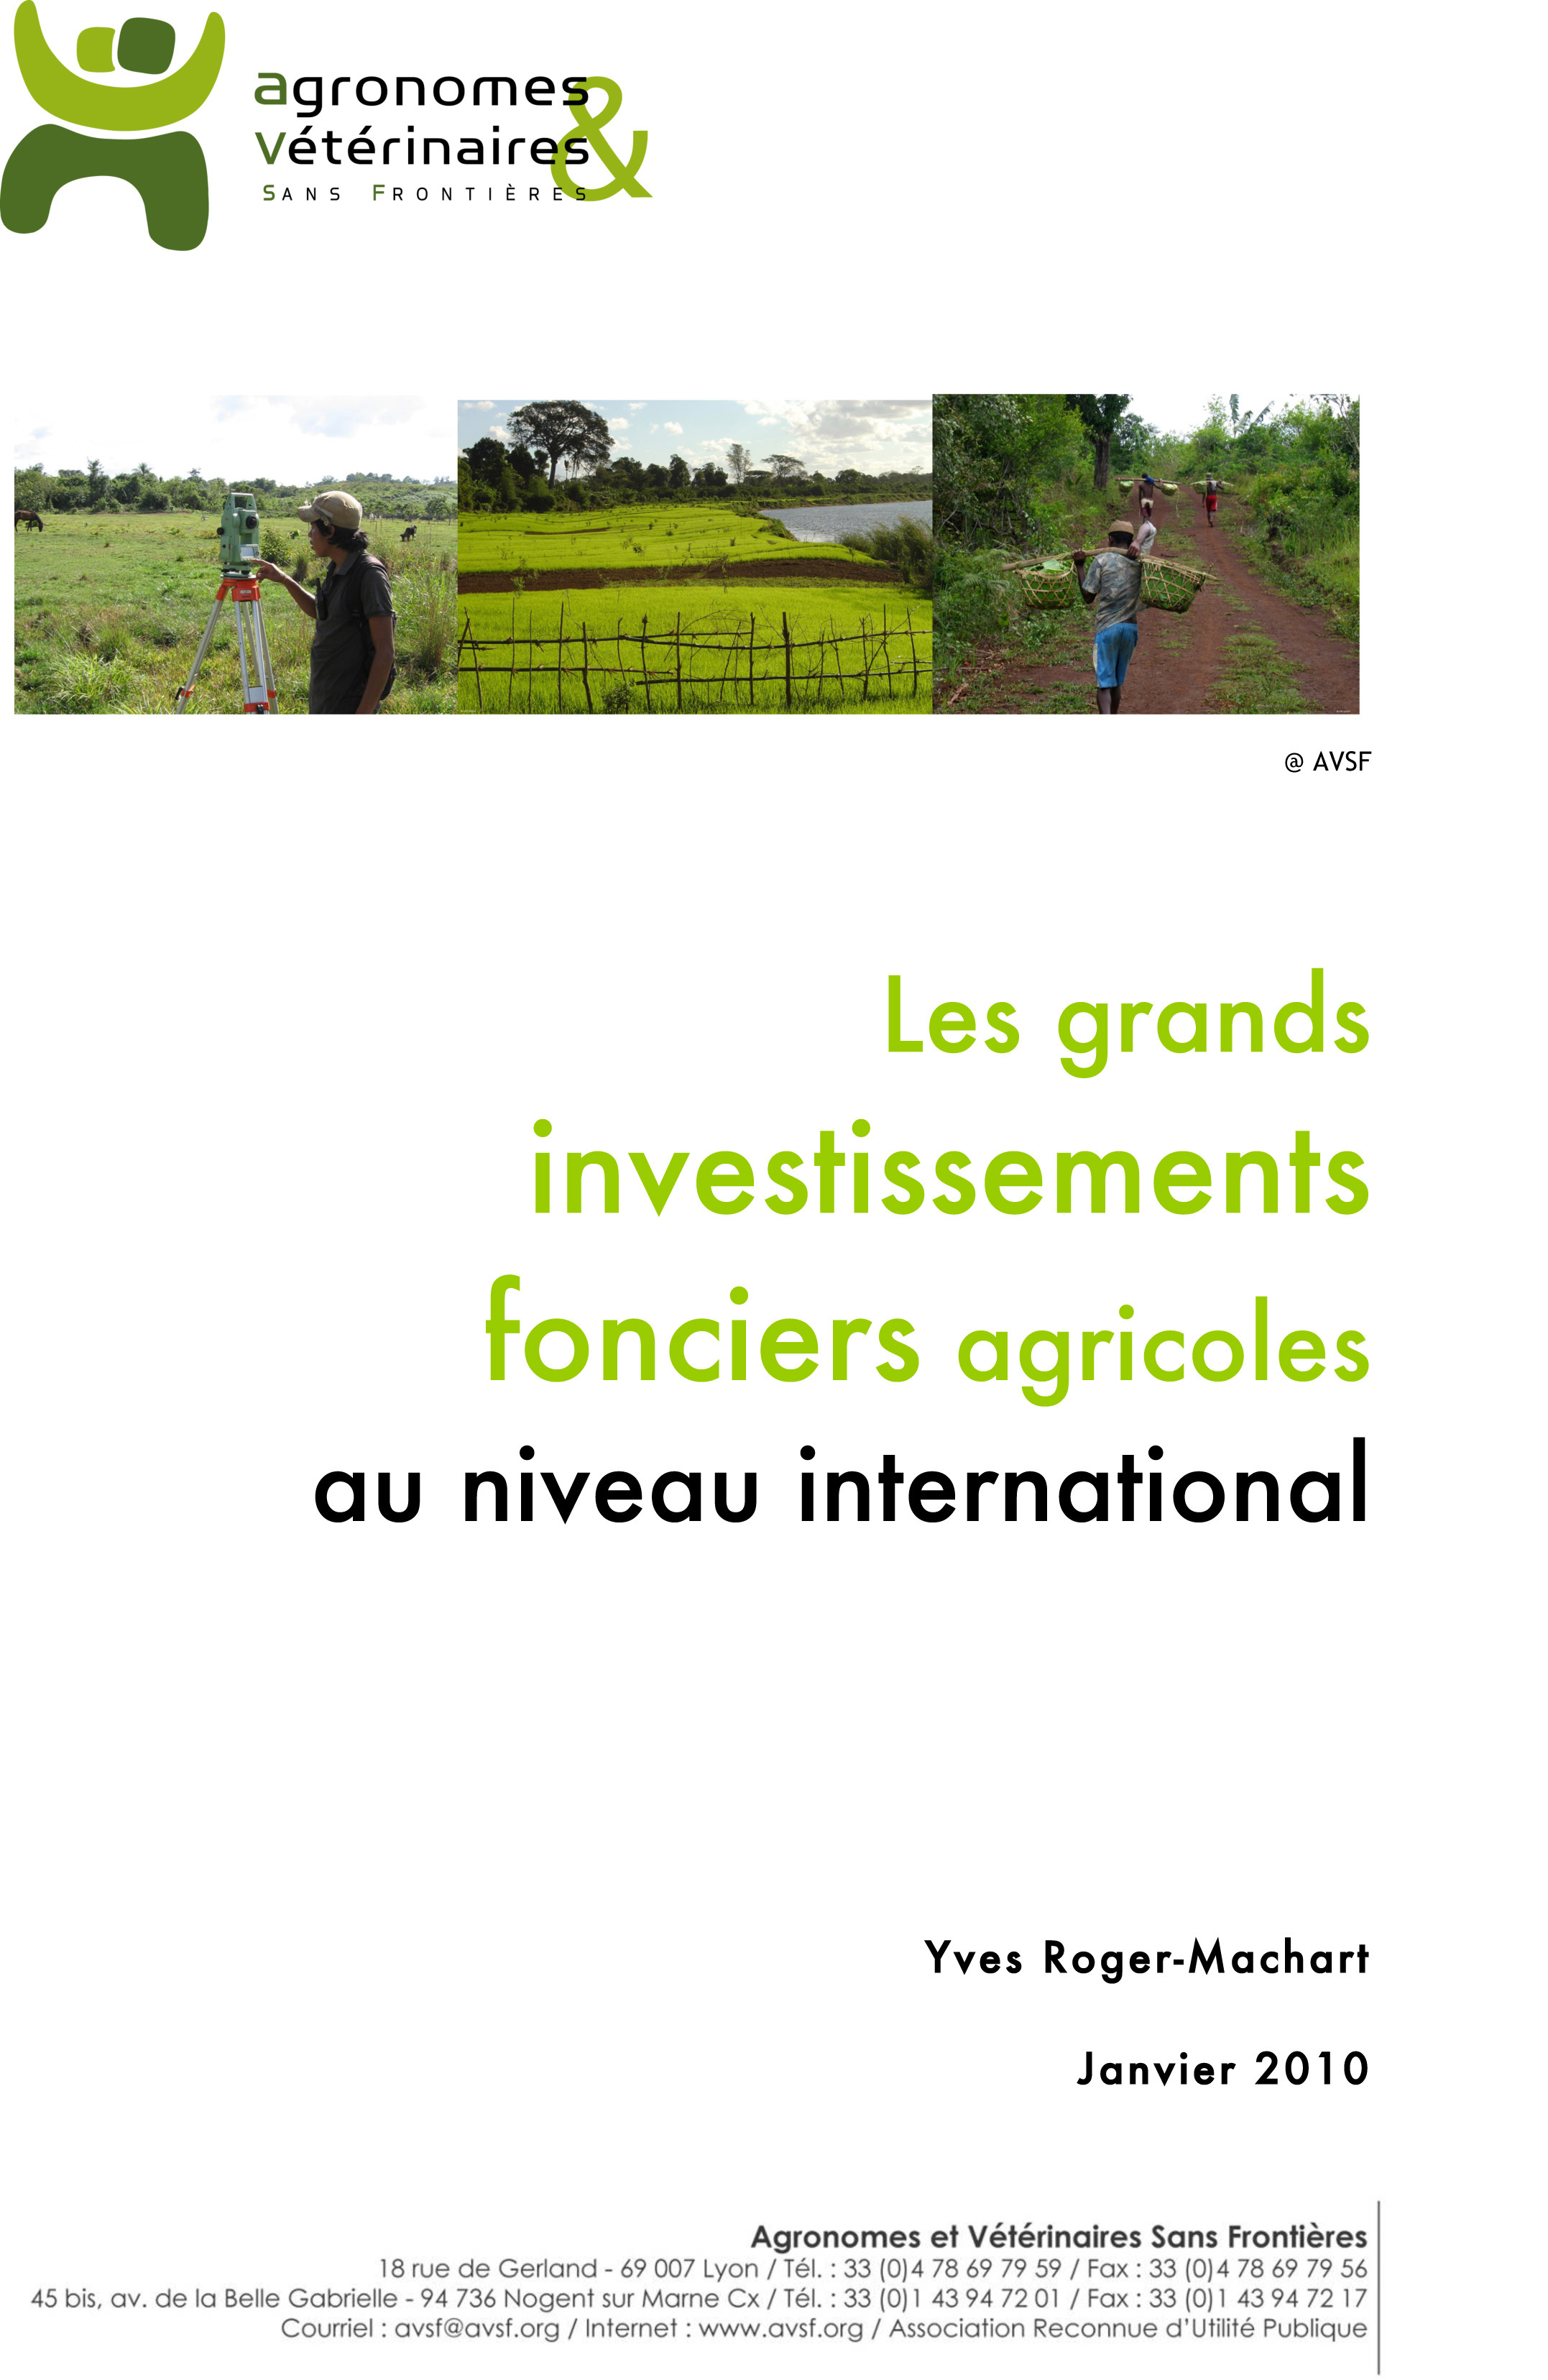 PDF Preview - Les grands investissements fonciers au niveau international